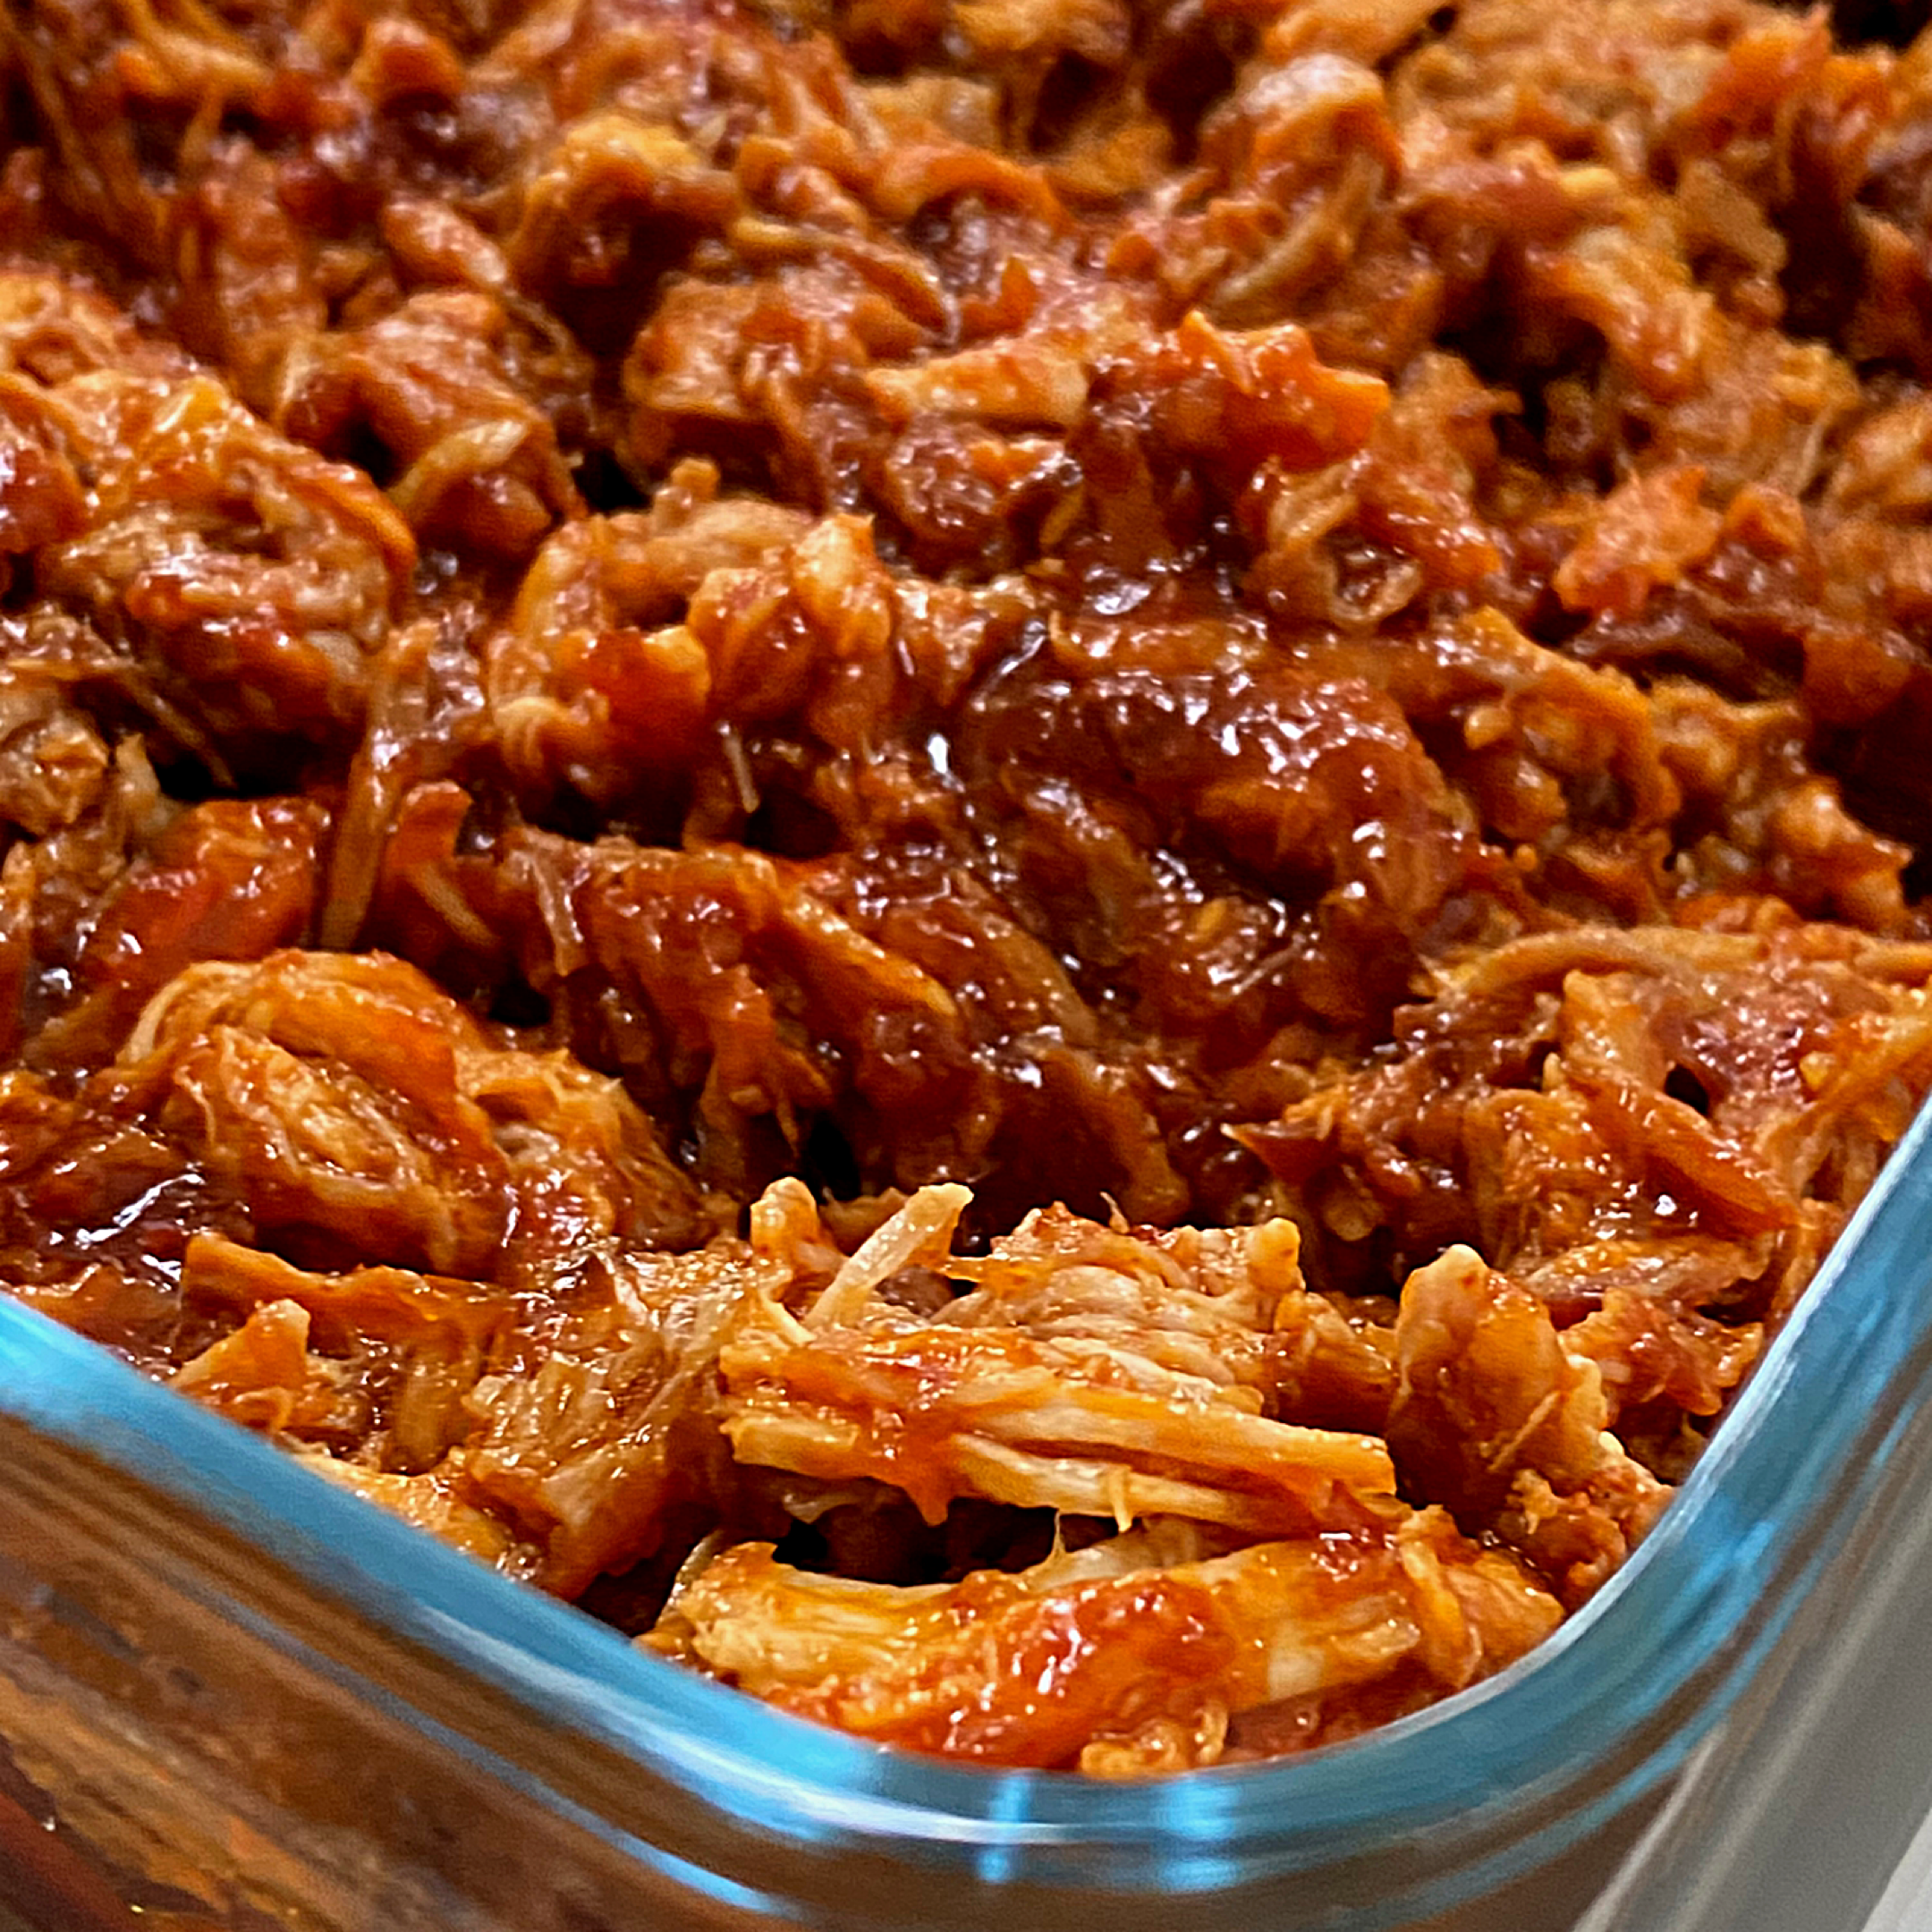 Freshly pulled pork in a dish